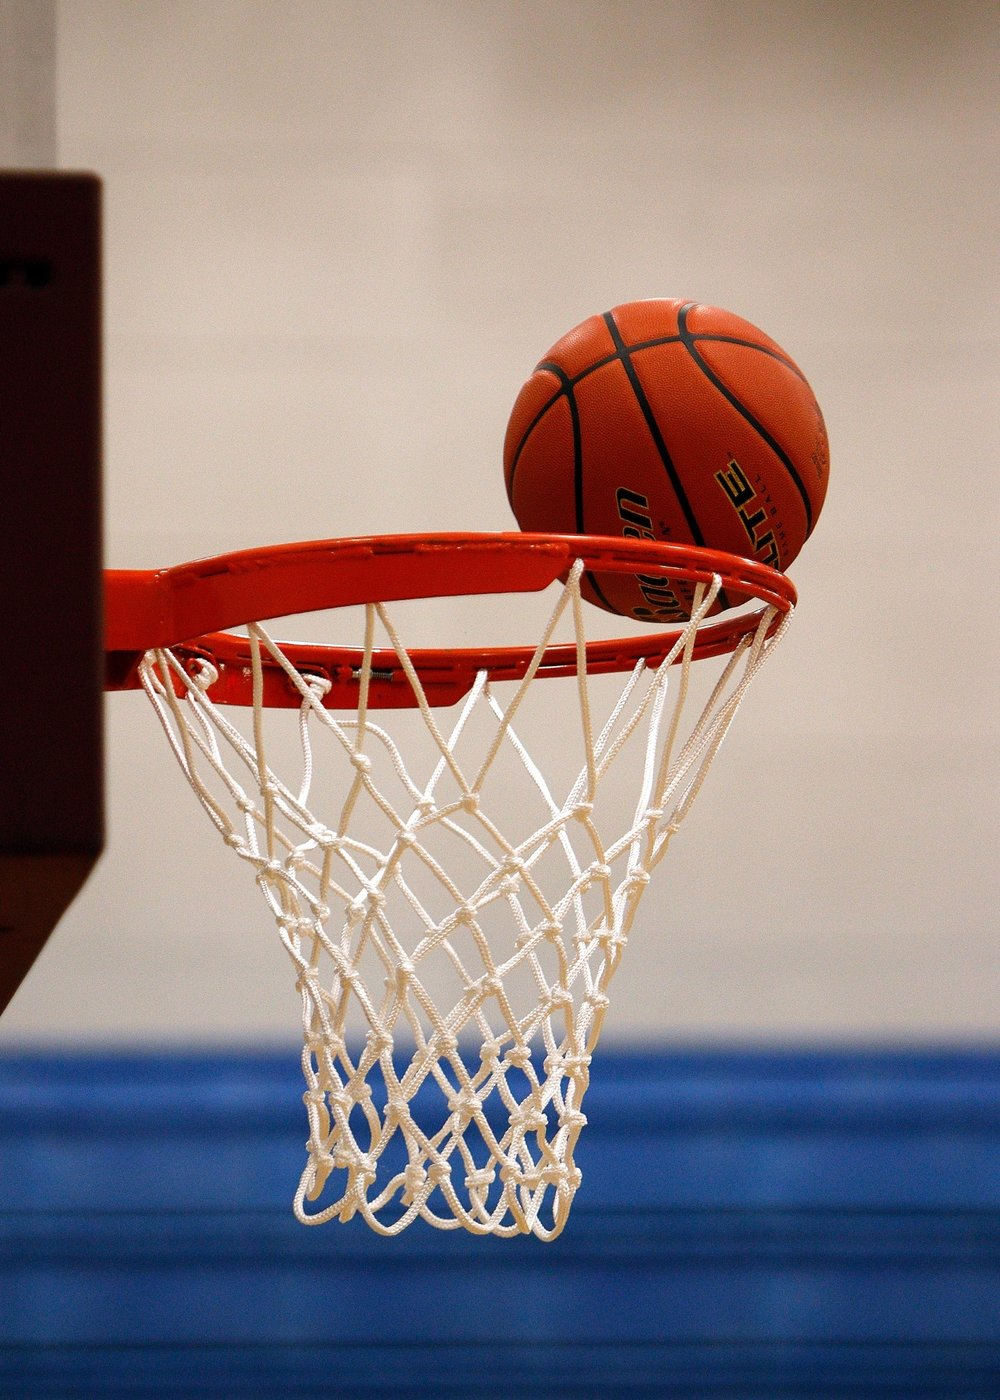 action-backboard-ball-358042.jpg